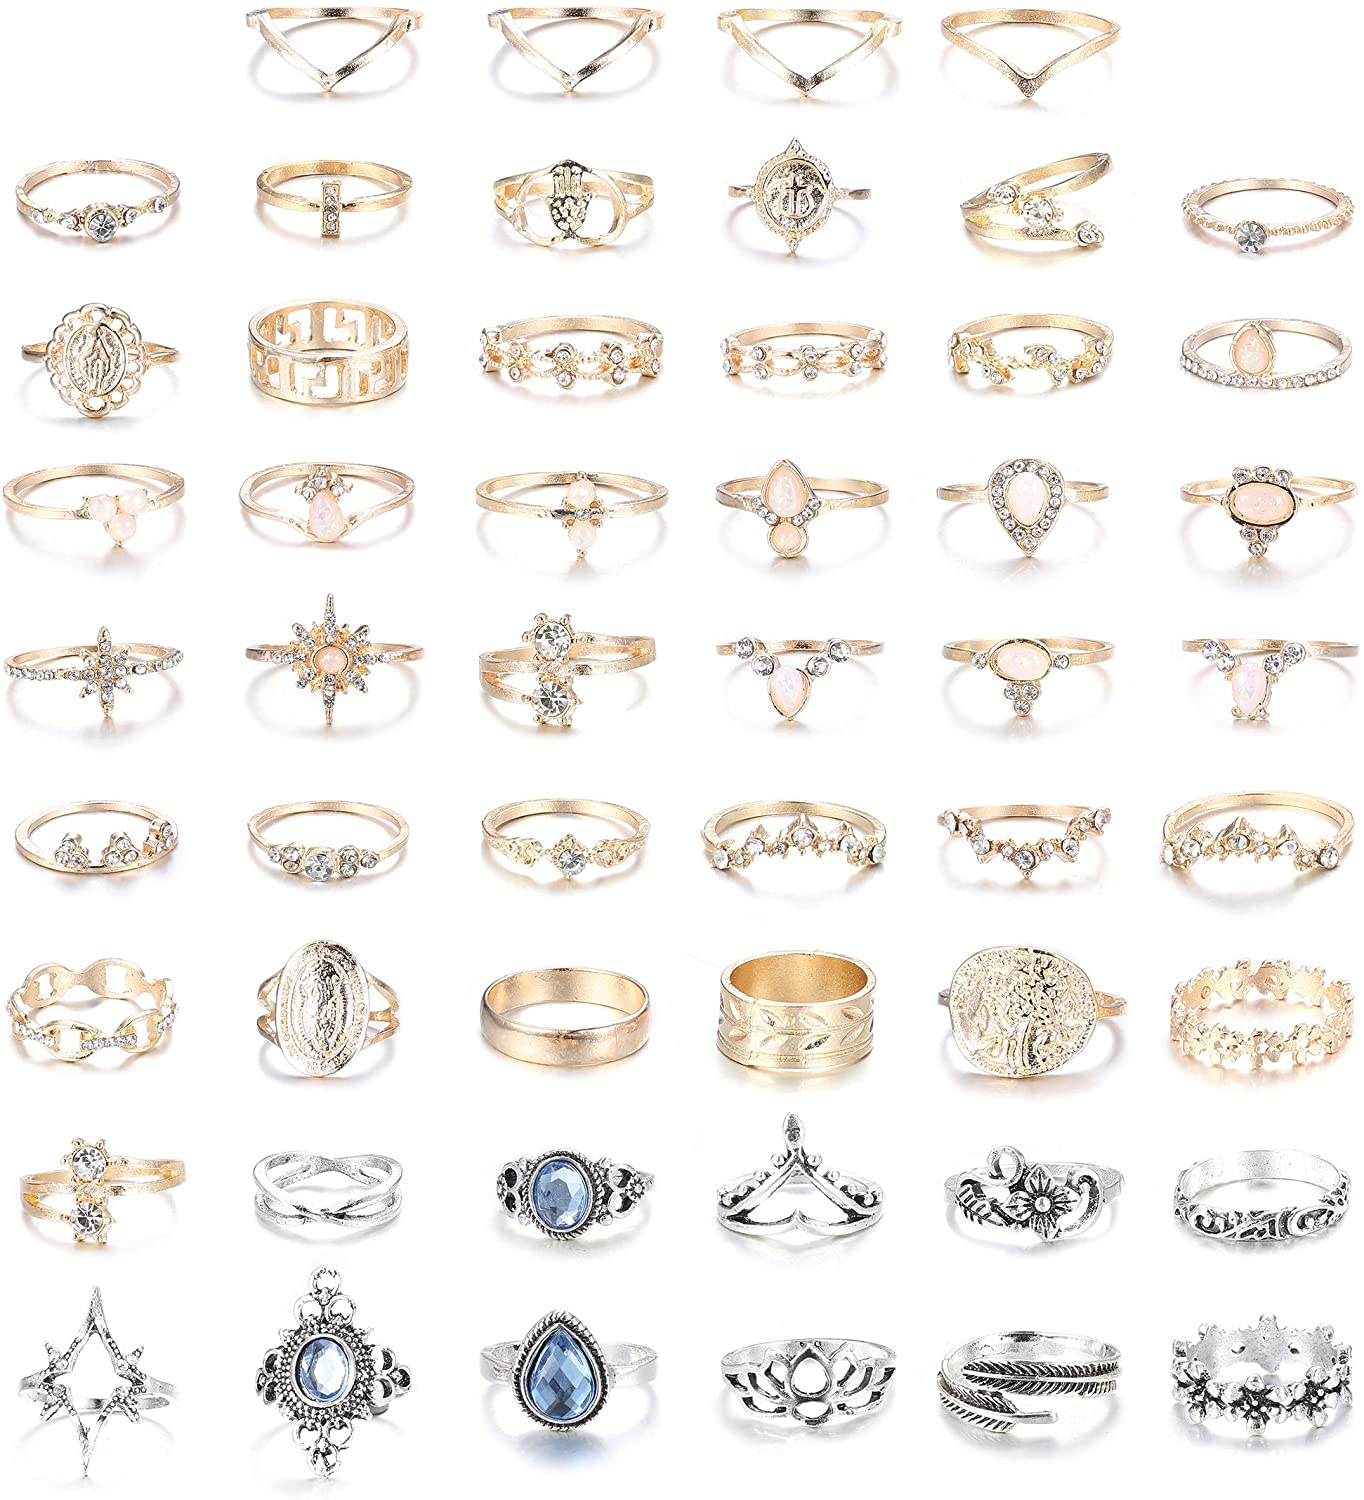 YADOCA 52 Pcs Vintage Knuckle Rings for Women Midi Ring Set Stackable Bohemian Retro Joint Finger Rings Hollow Carved Flowers